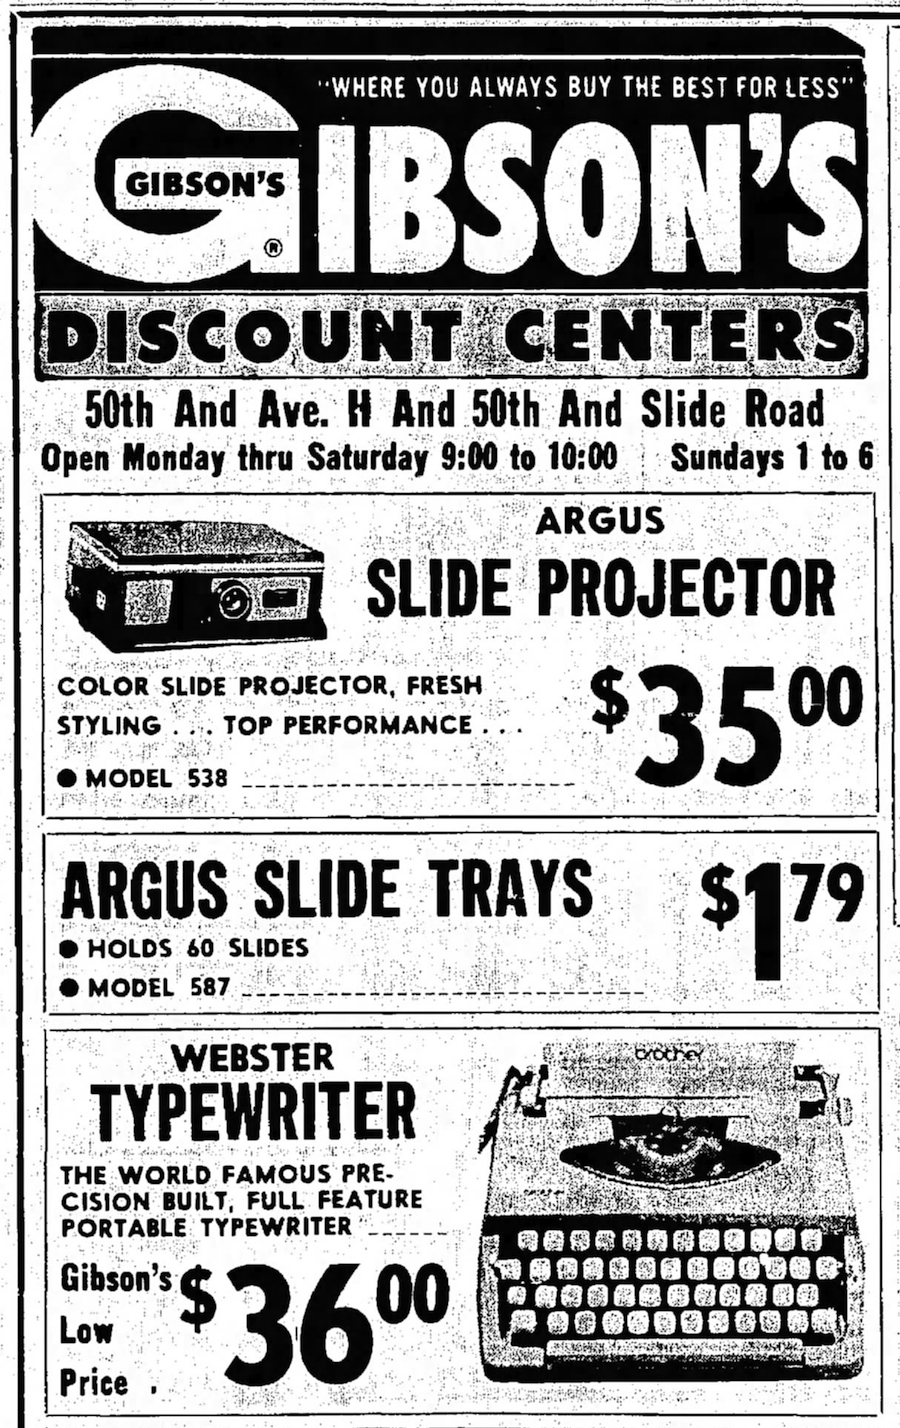 Webster Typewriter ad Lubbock Avalanche-Journal - Lubbock, Texas - Thu, Jan 1, 1970